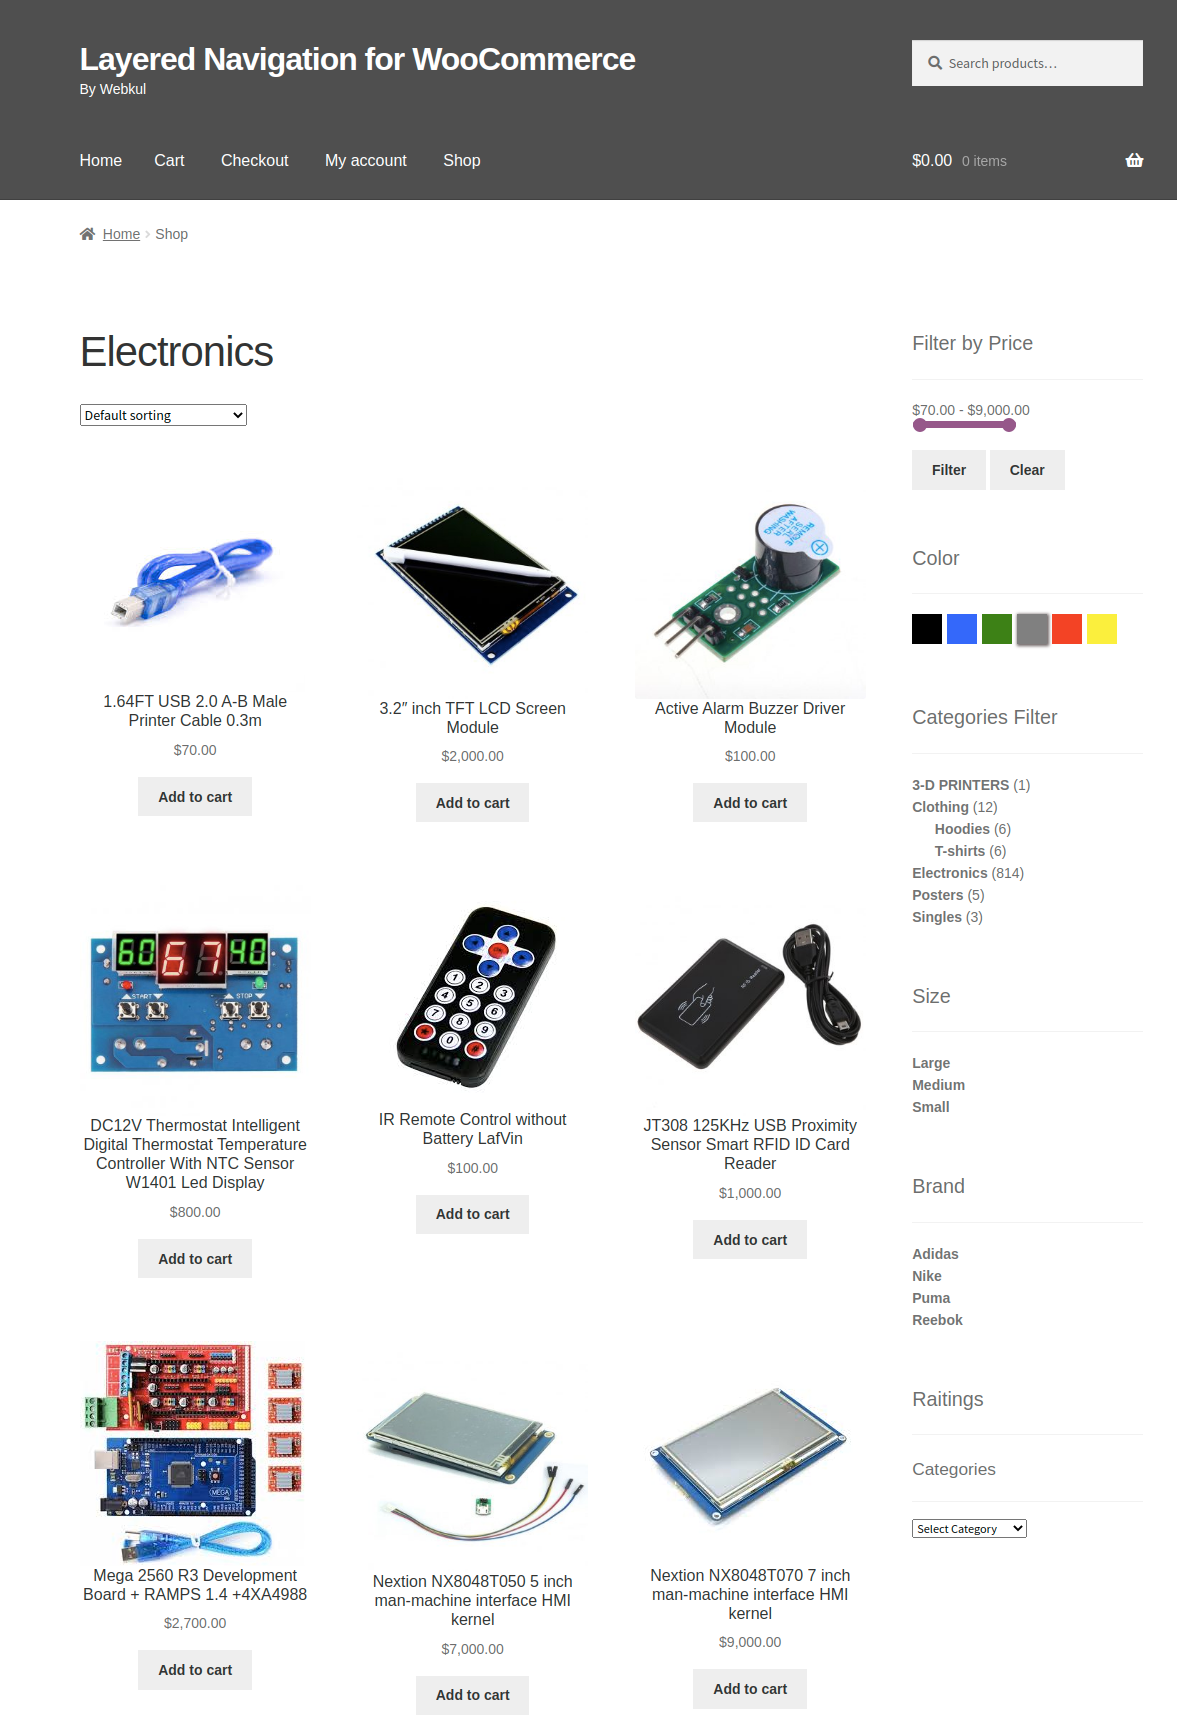 webkul-woocommerce-layered-navigation-plugin-shop-page-results-on-applying-filters